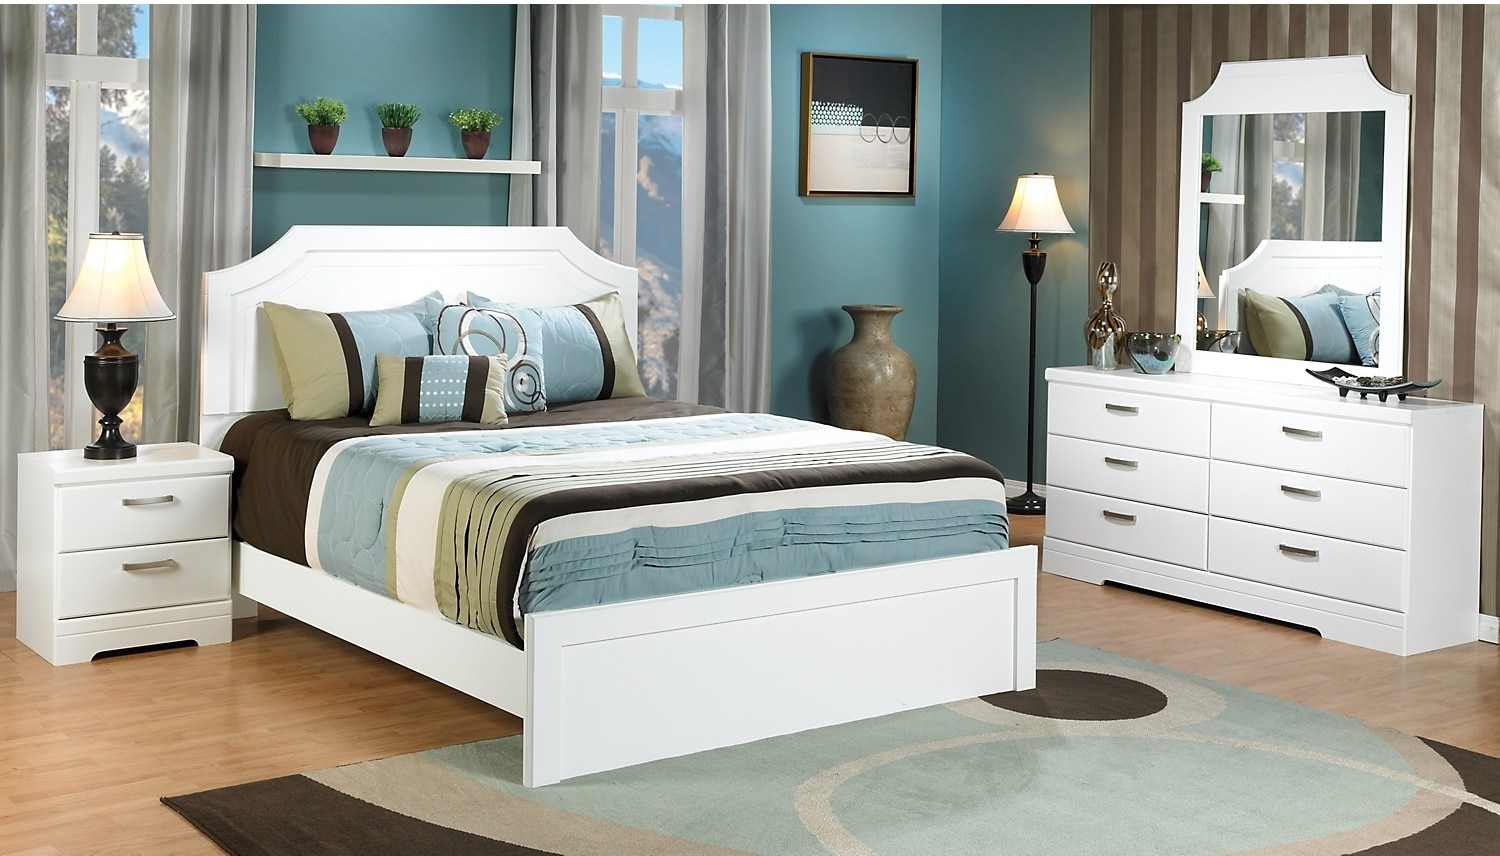 Bedroom Furniture - Bianco 6-Piece Queen Bedroom Package